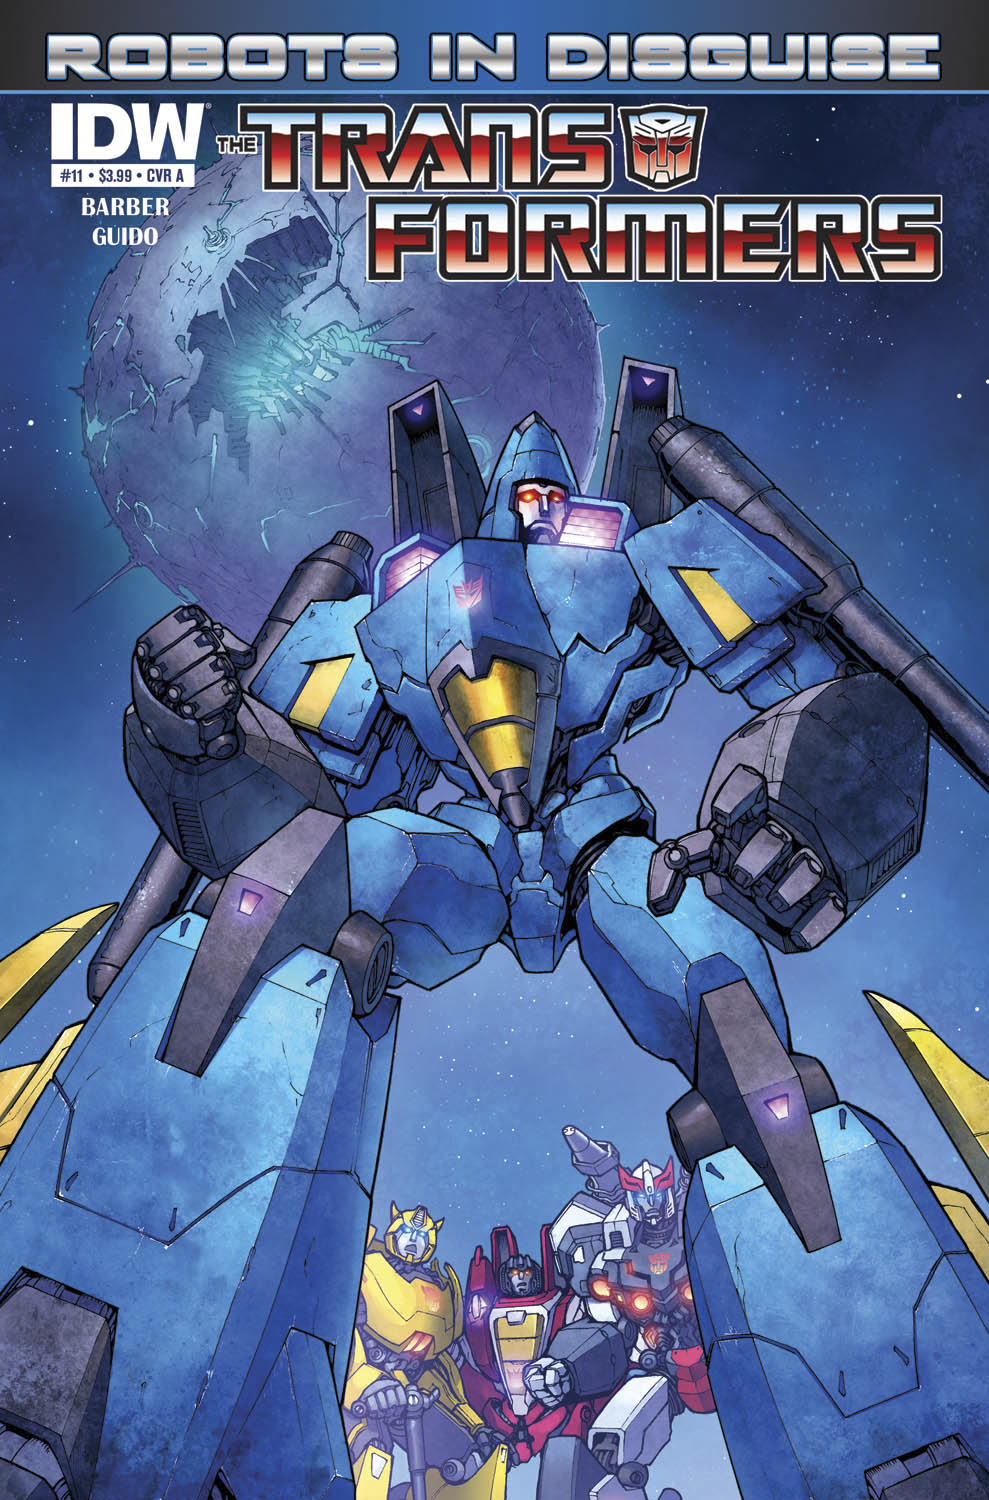 TRANSFORMERS ROBOTS IN DISGUISE #11